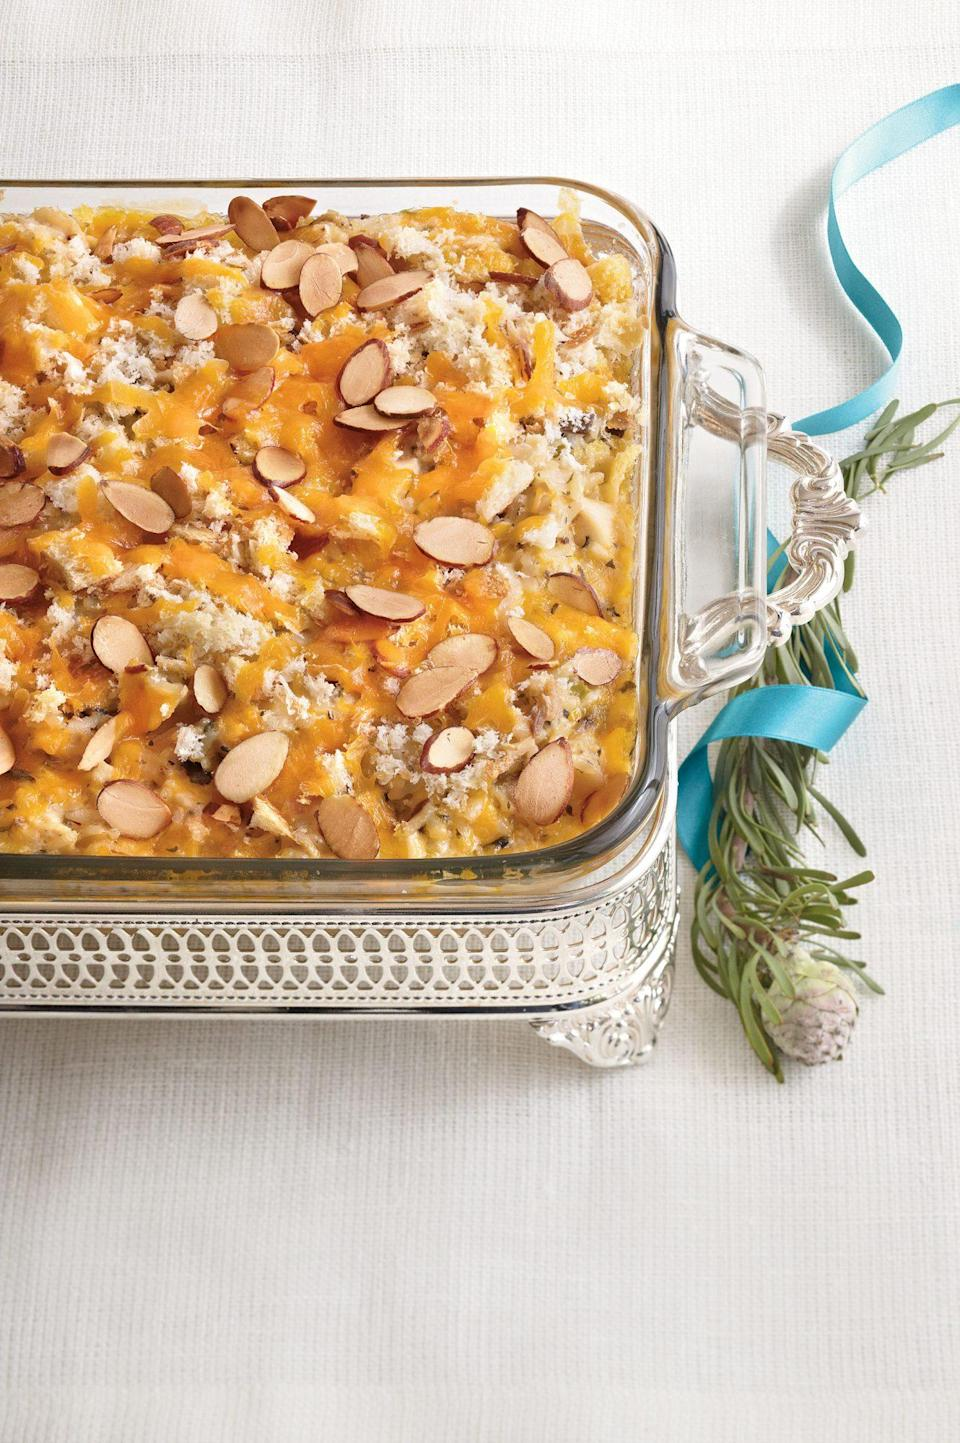 """<p><strong>Recipe: <a href=""""https://www.southernliving.com/syndication/chicken-wild-rice-casserole"""" rel=""""nofollow noopener"""" target=""""_blank"""" data-ylk=""""slk:Chicken and Wild Rice Casserole"""" class=""""link rapid-noclick-resp"""">Chicken and Wild Rice Casserole</a></strong></p> <p>If you want to swap up the menu from chicken, this casserole can also be prepared with shrimp. </p>"""